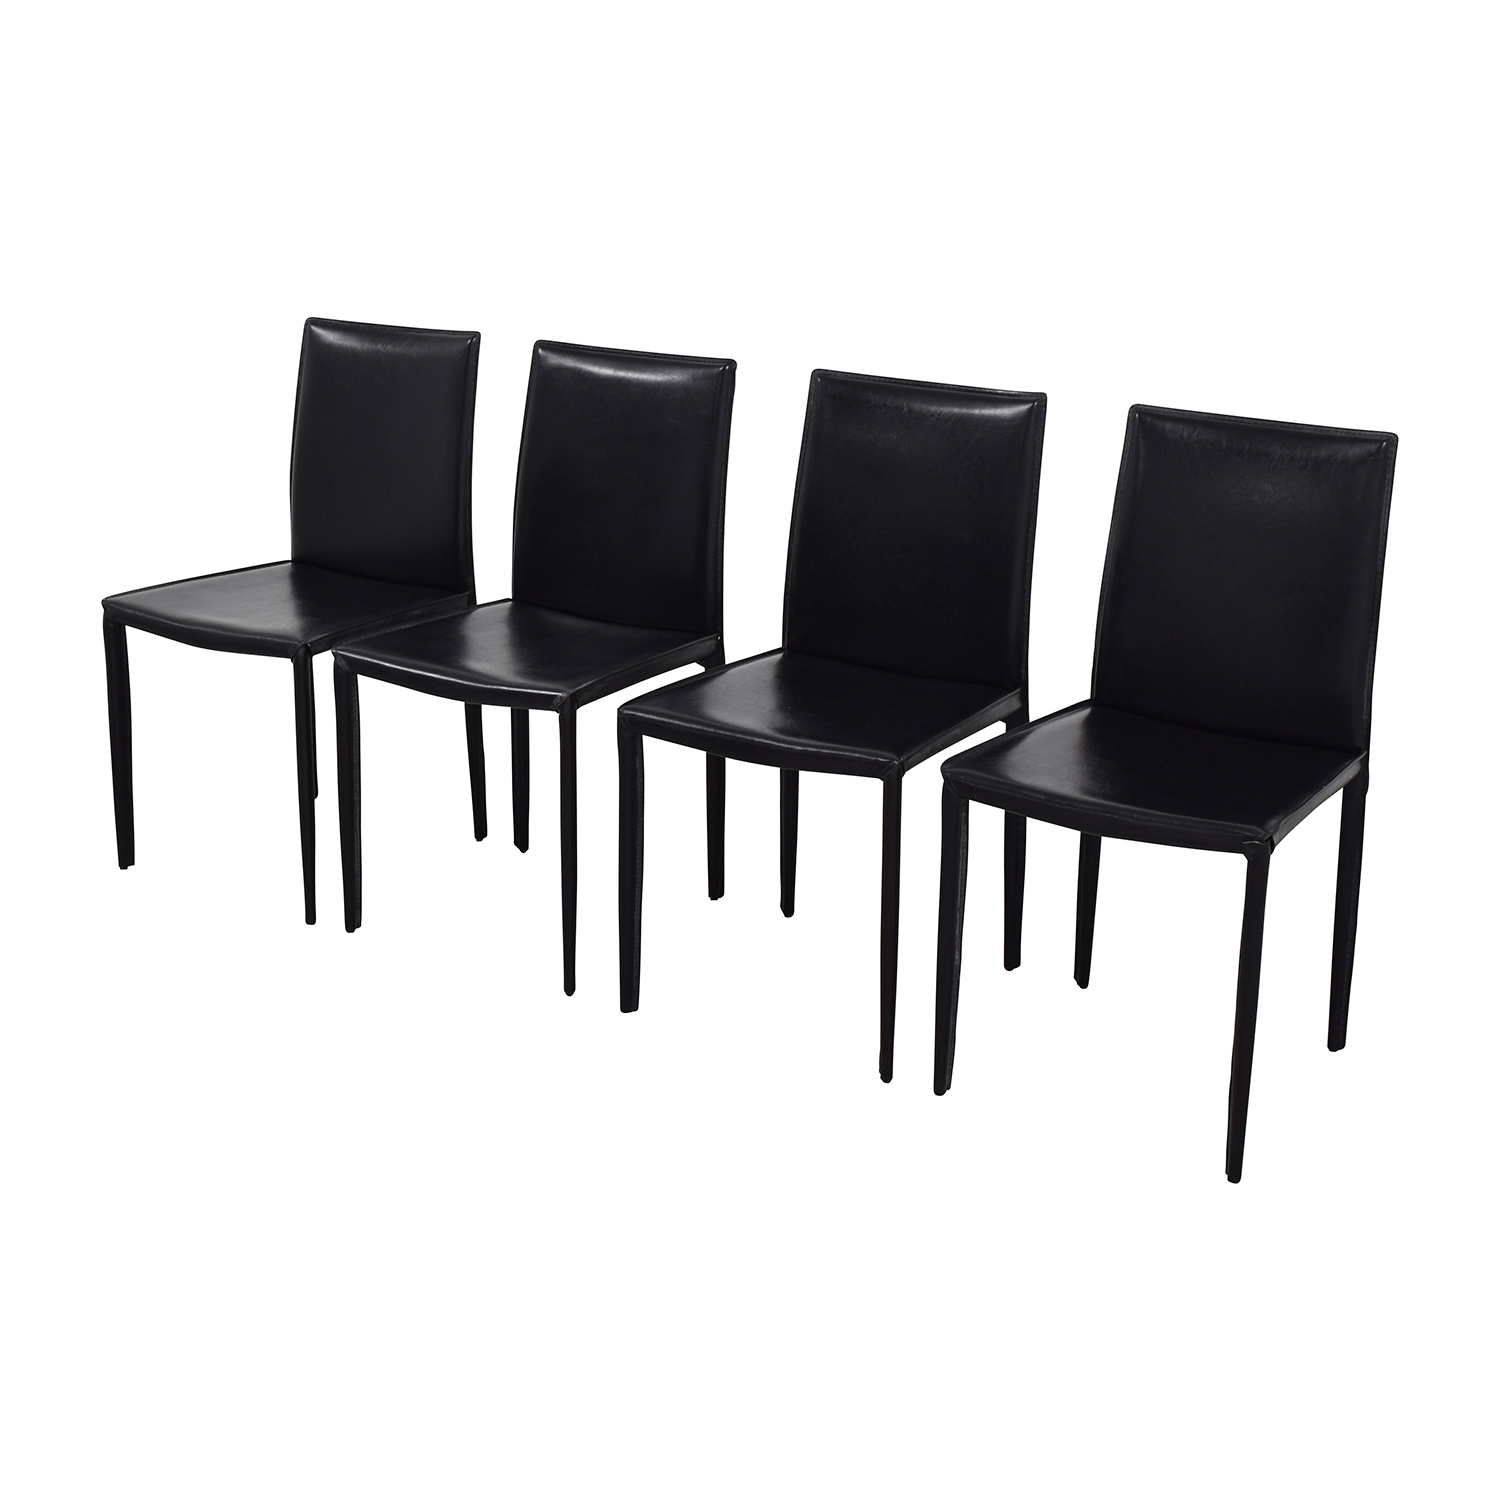 InMod Mia Black Leather Chair / Chairs